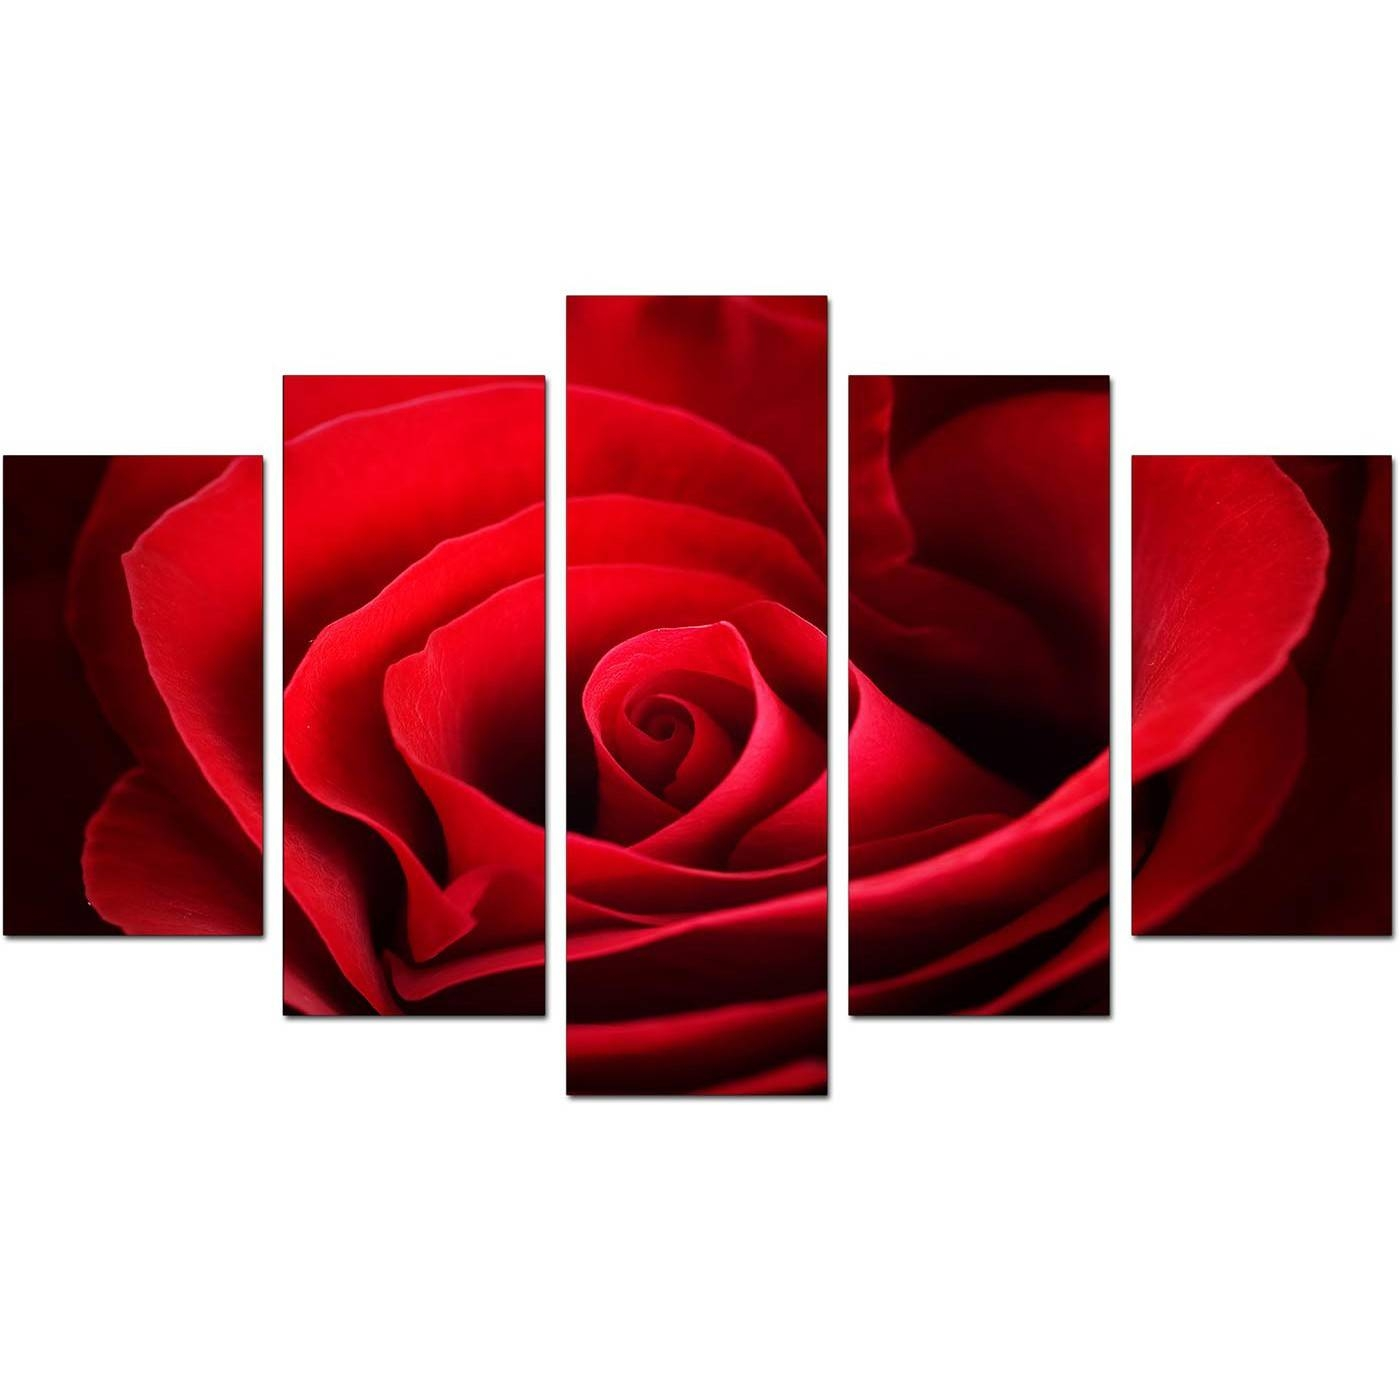 Extra Large Rose Canvas Wall Art 5 Panel In Red Inside Most Recent Rose Canvas Wall Art (Gallery 2 of 20)